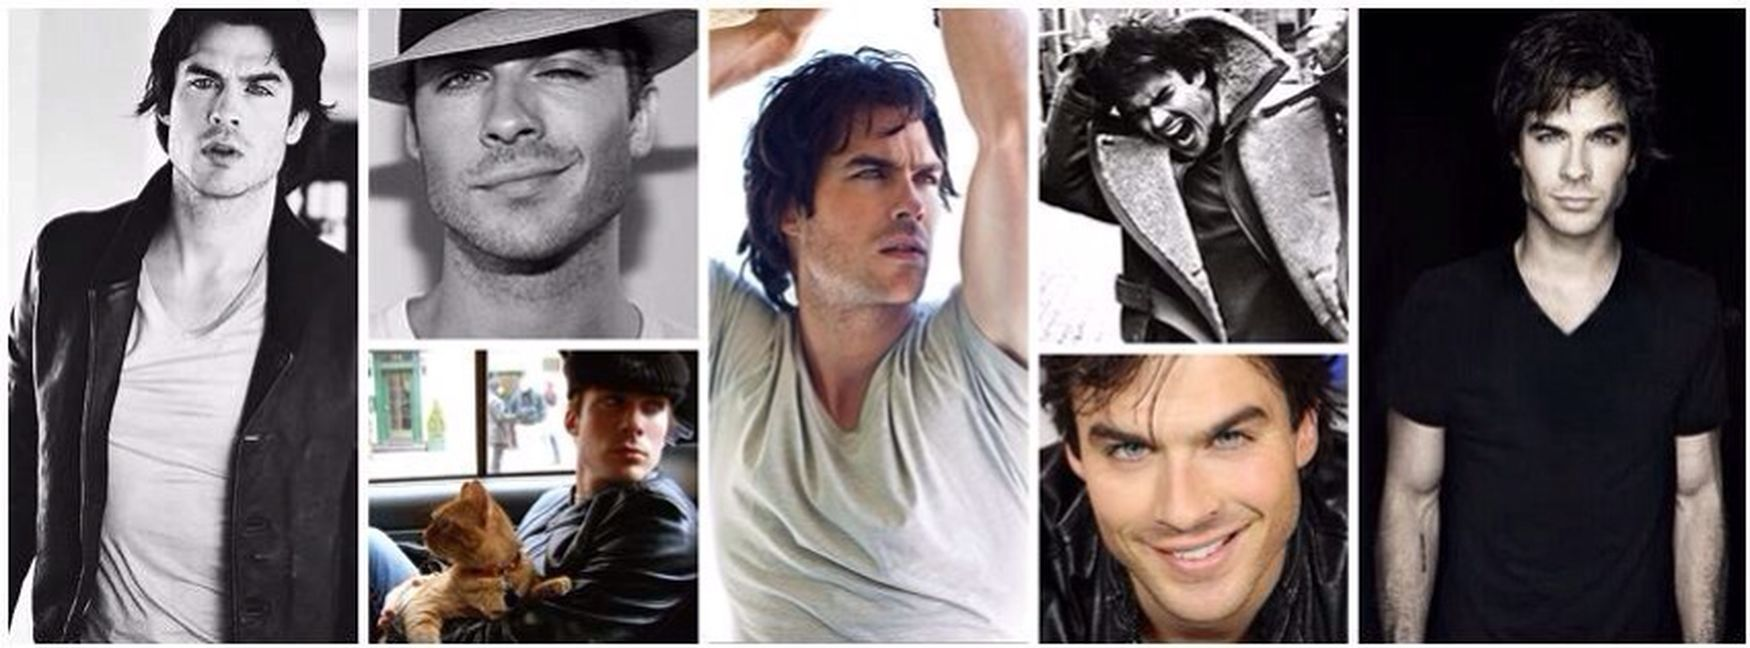 I love you !!! Damon❤️❤️❤️